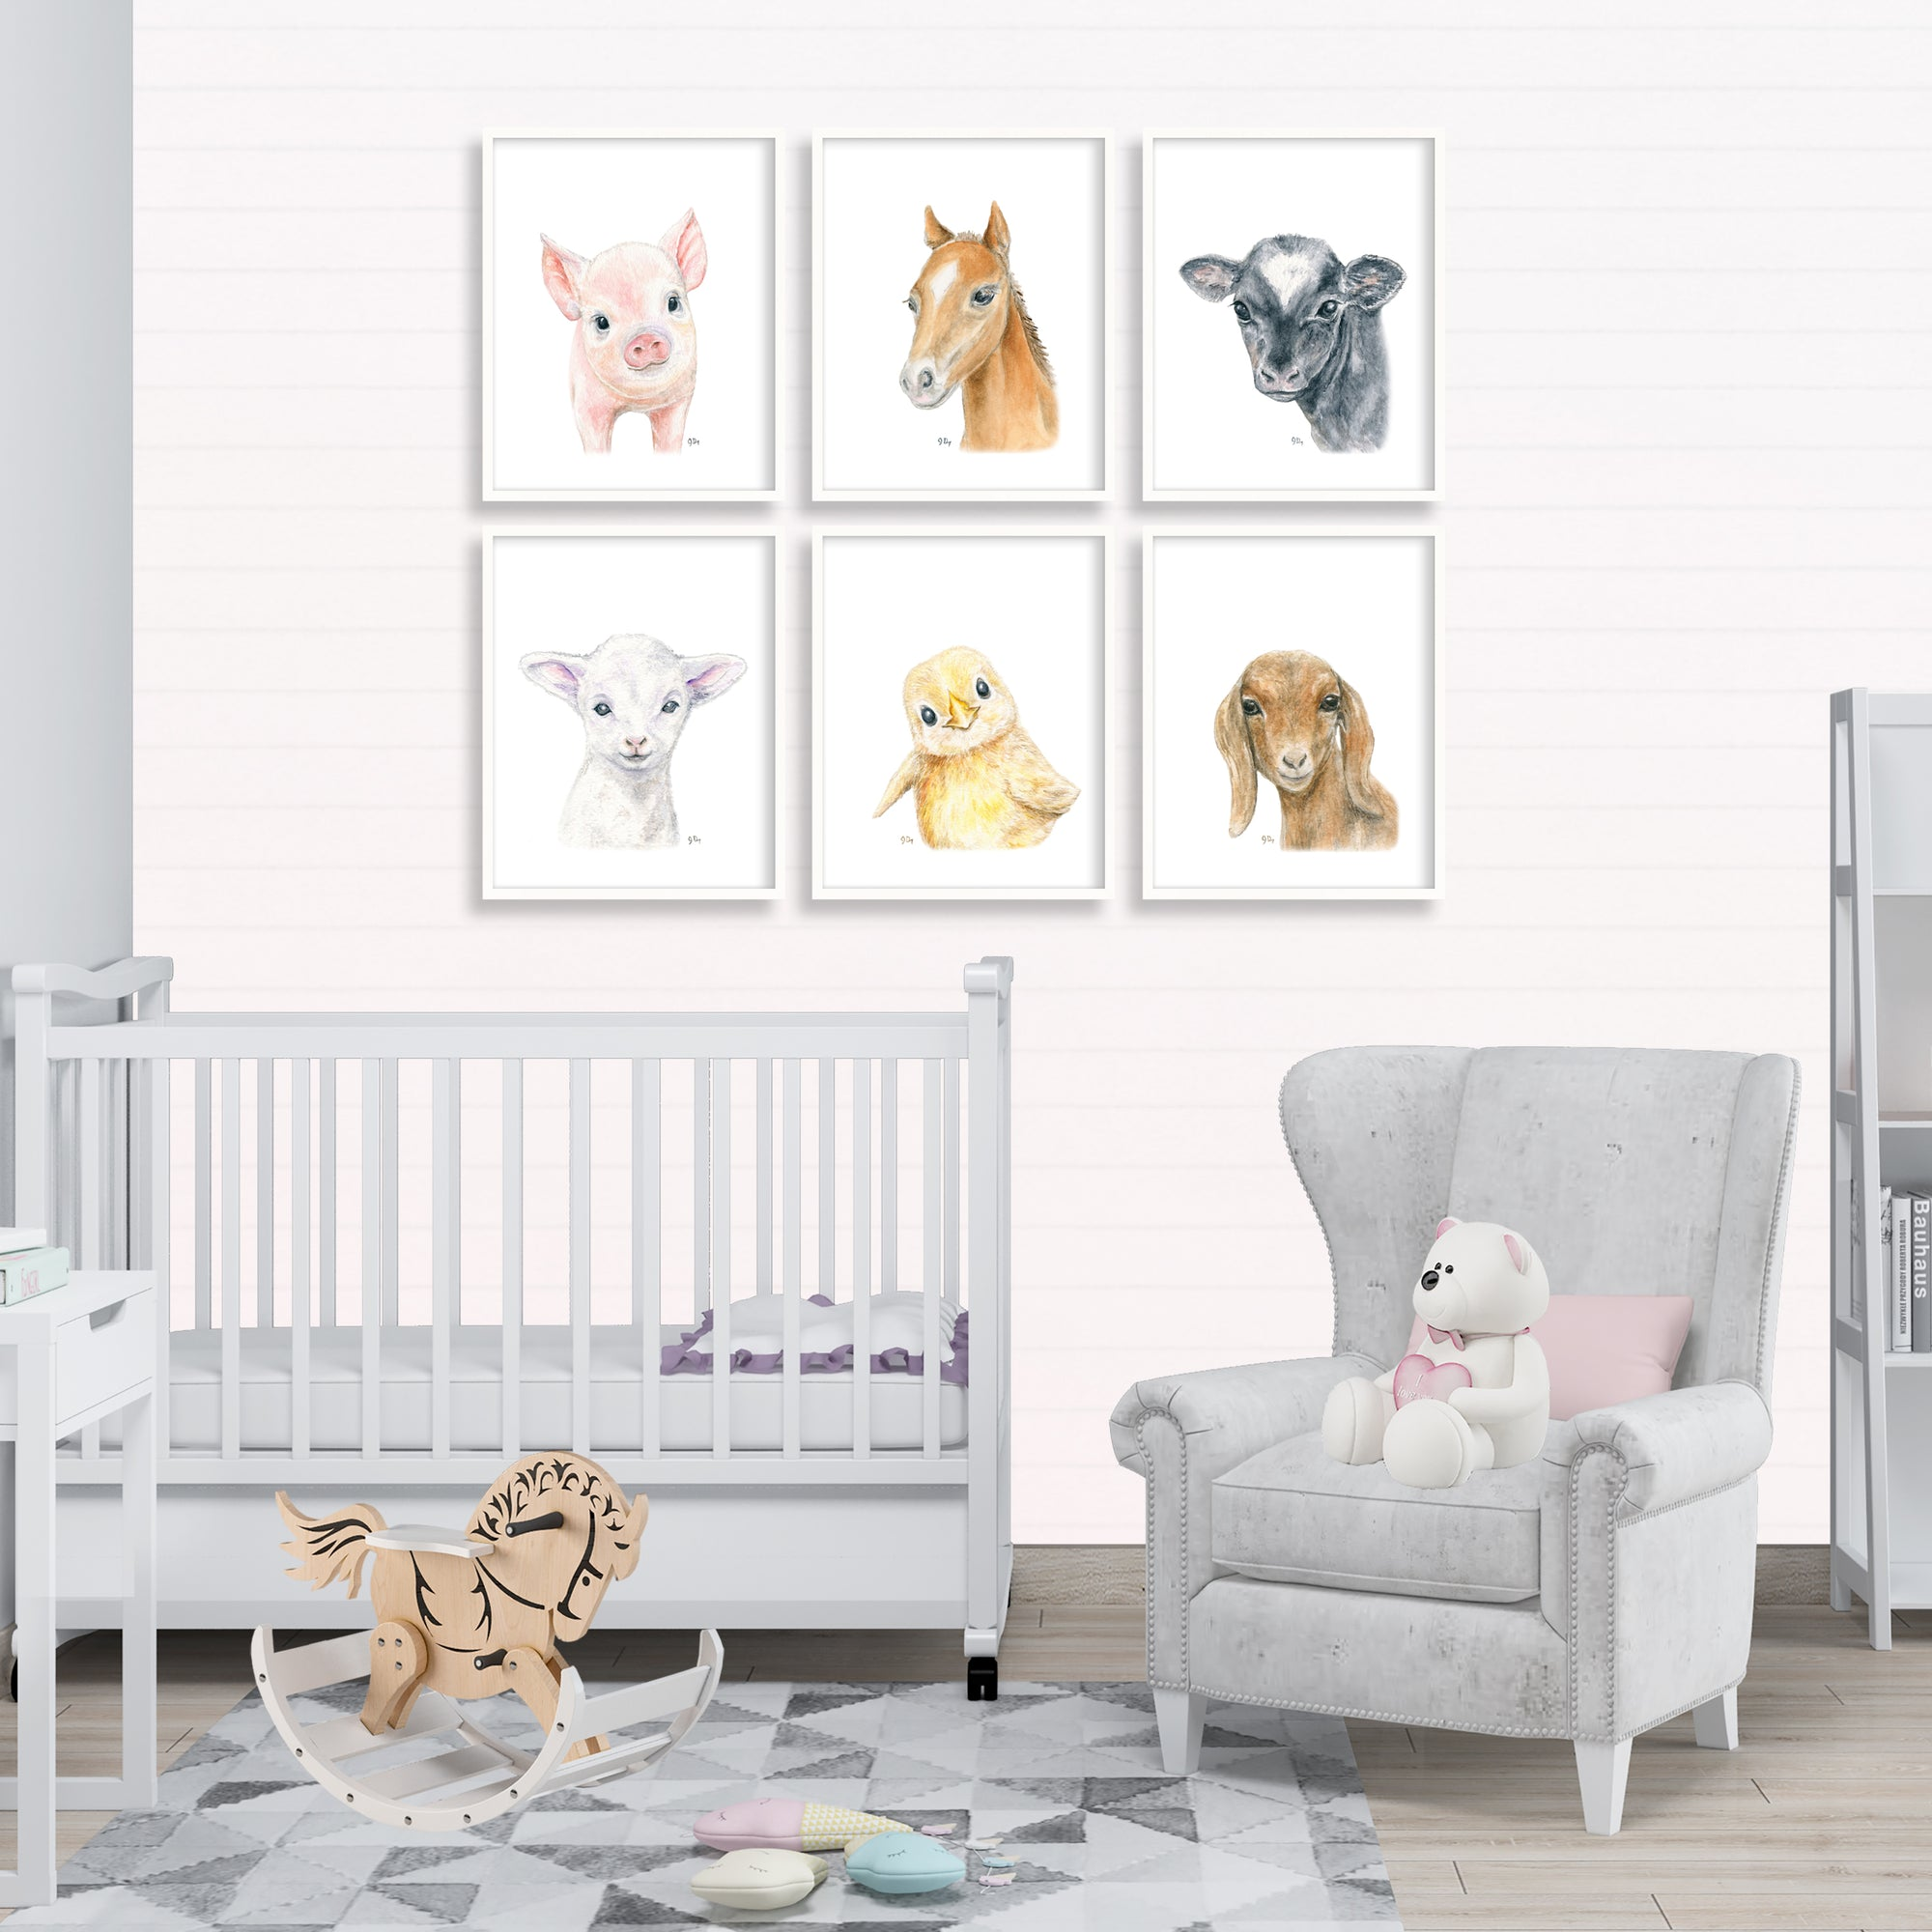 farm  farmyard barnyard animal nursery playroom decor wall art horse pig cow lamb sheep chick goat